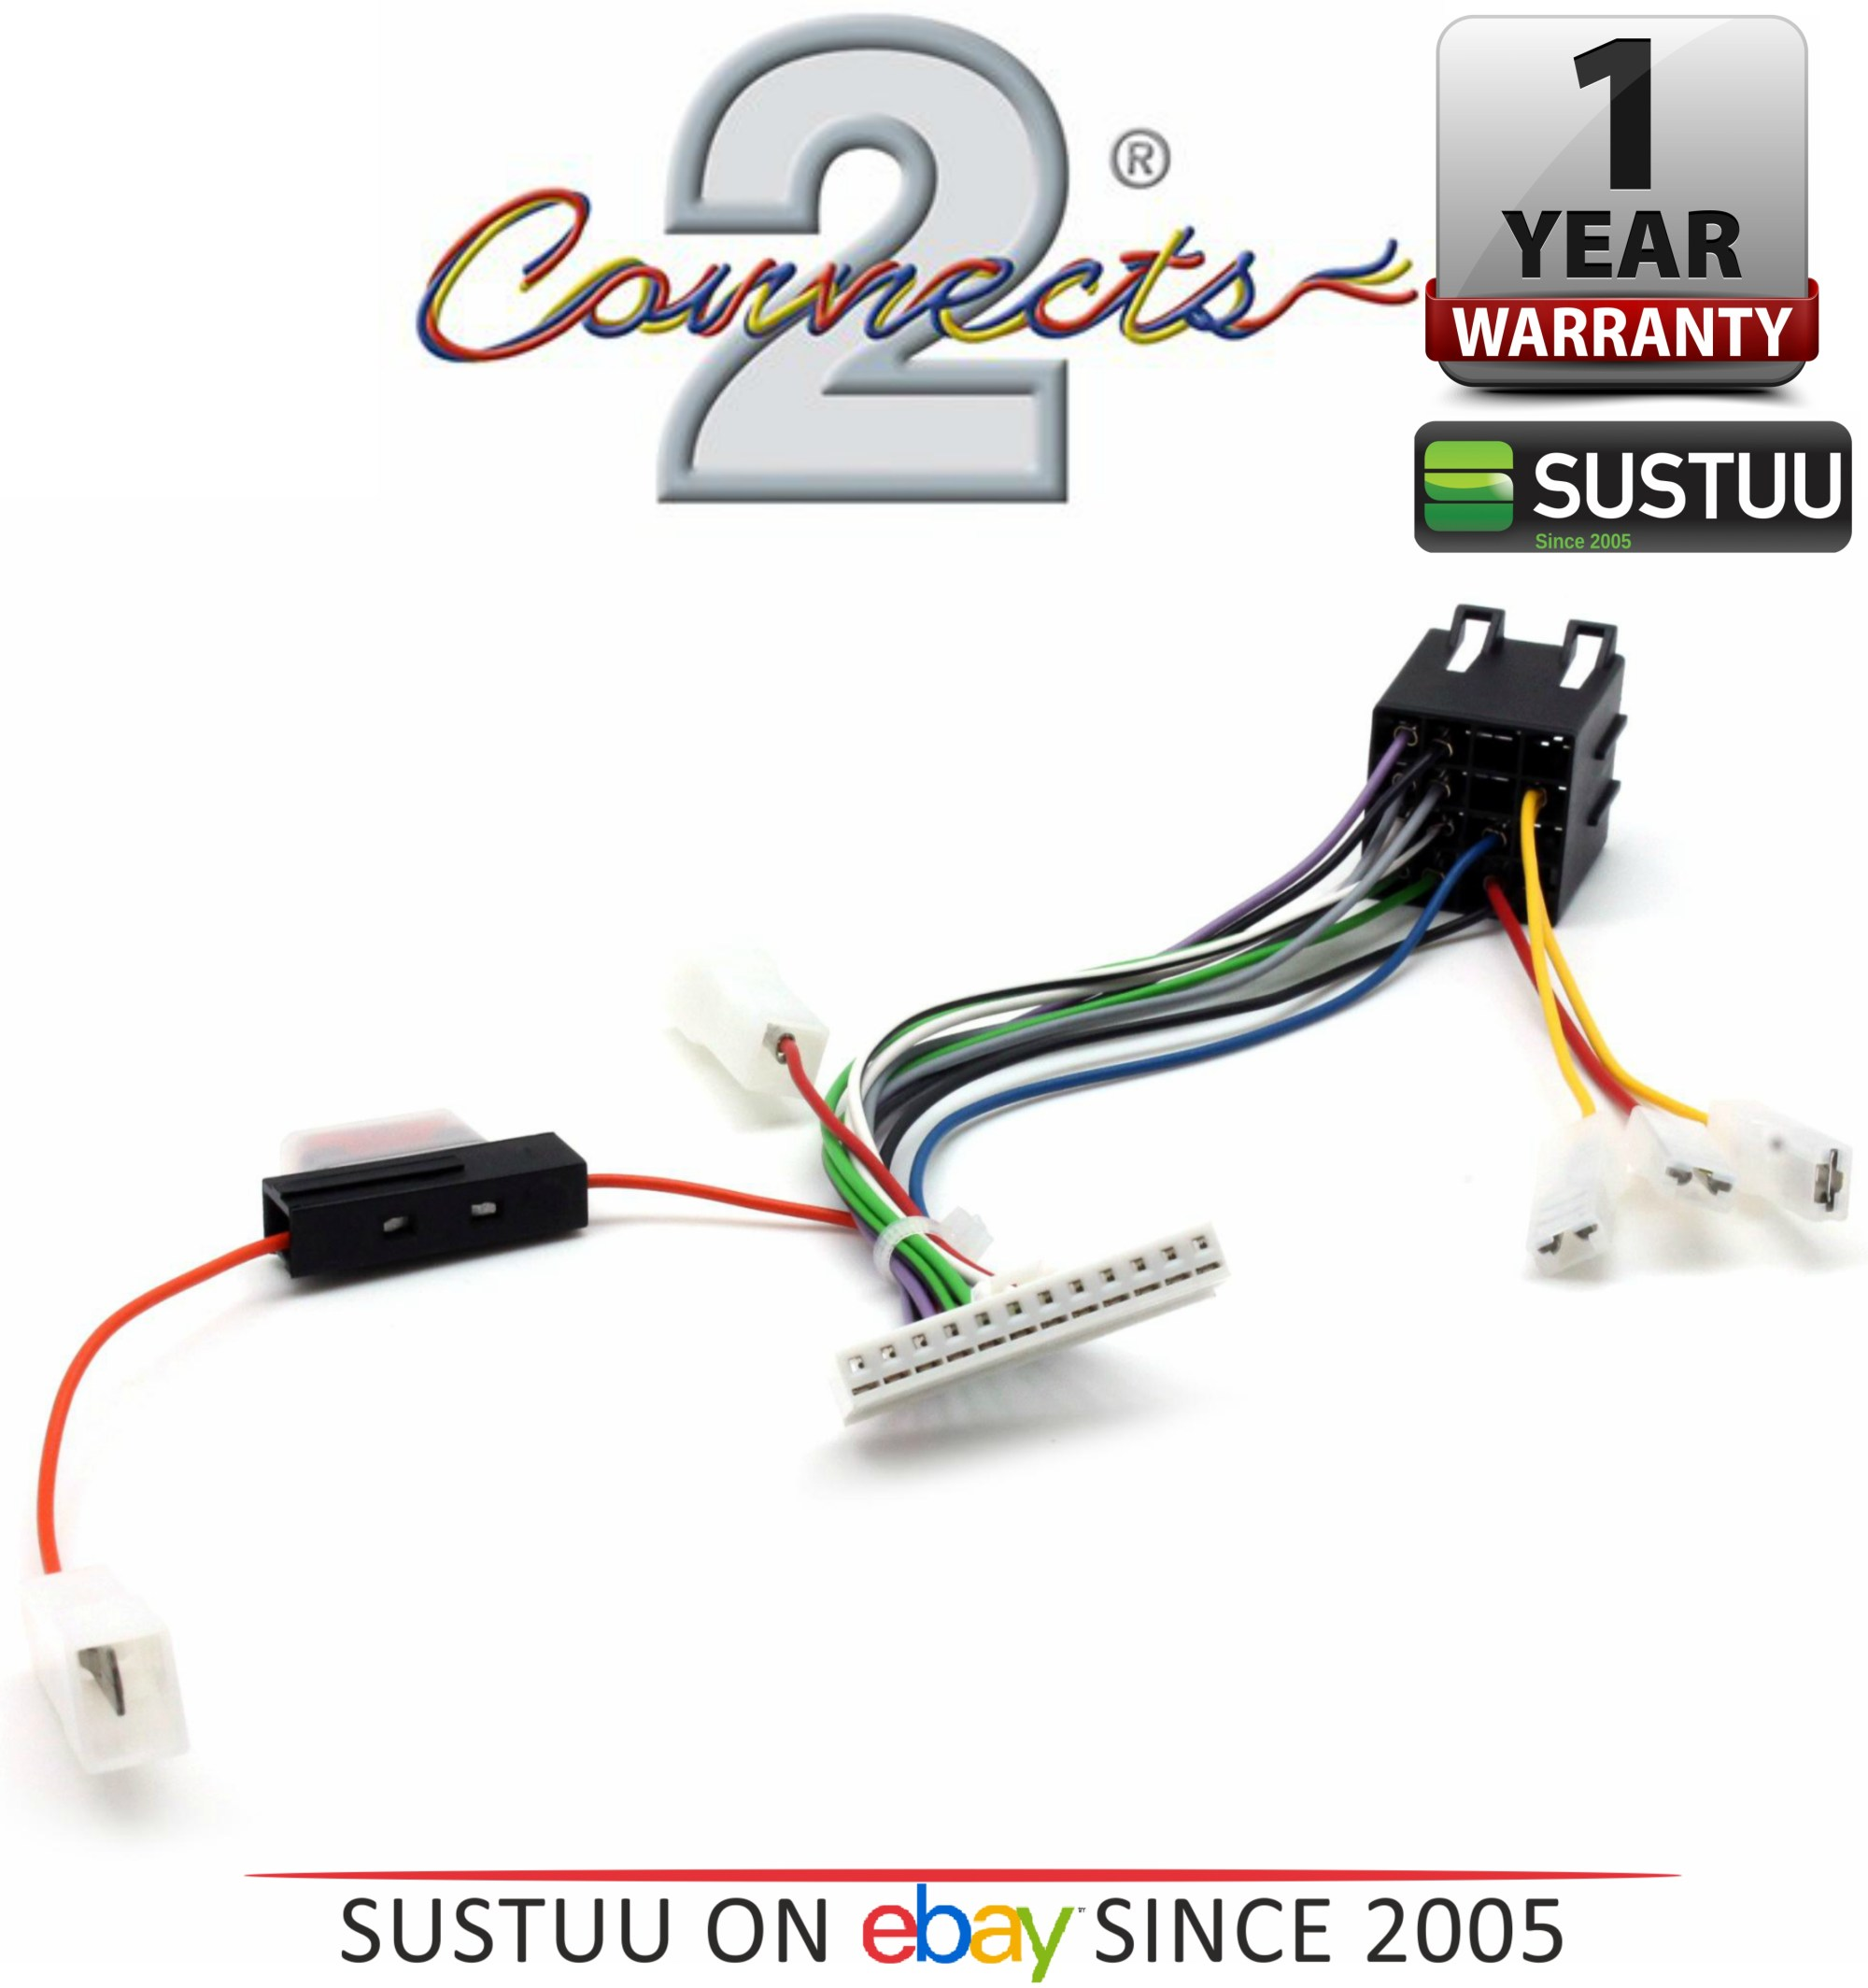 hight resolution of c2 21pn01 car stereo wiring harness adapters fits pioneer 12 pin iso 1yrwarranty thumbnail 2